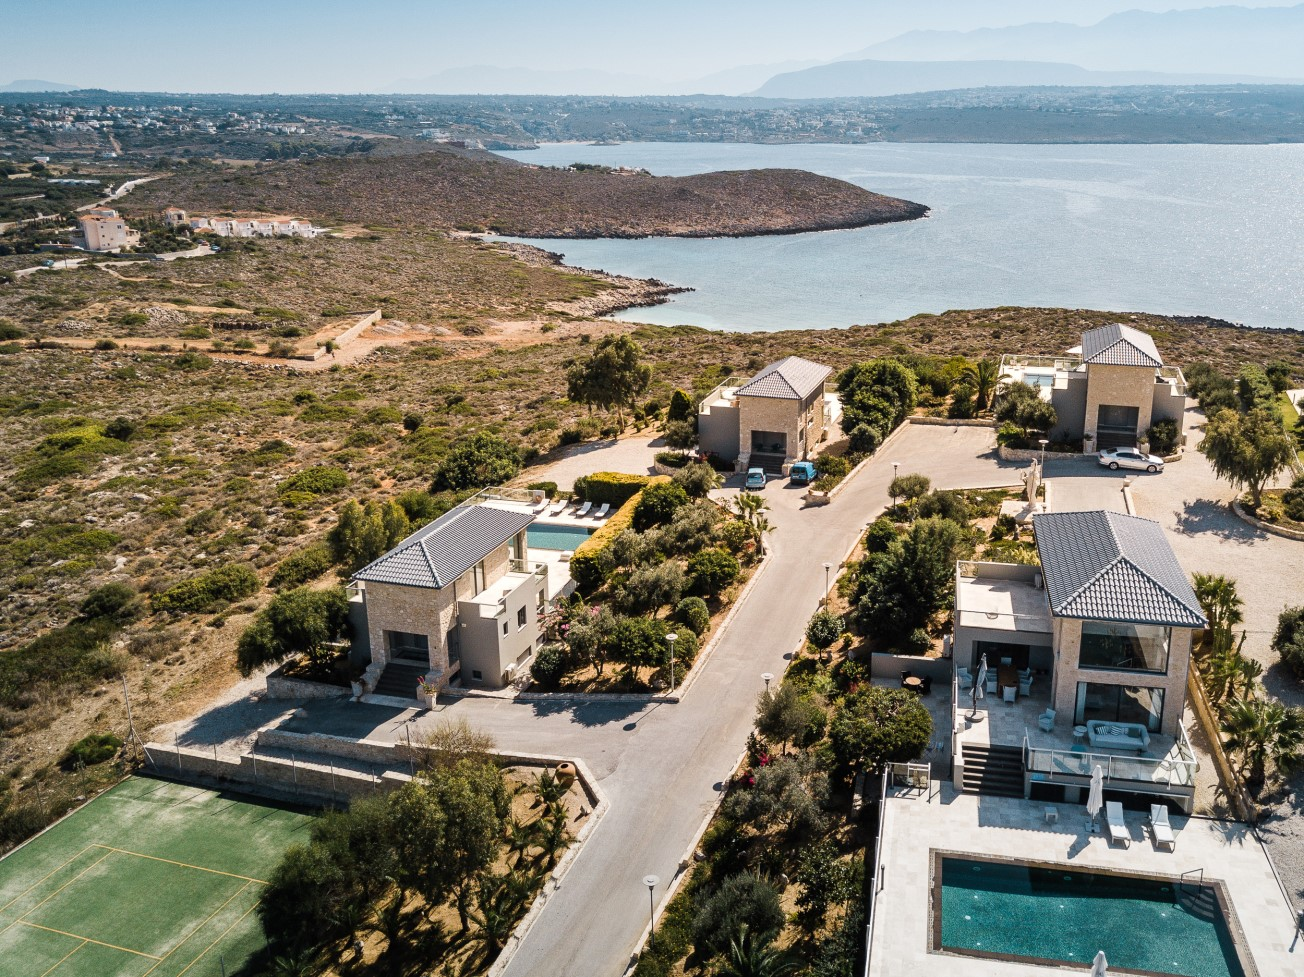 hotel for sale in crete aerial view